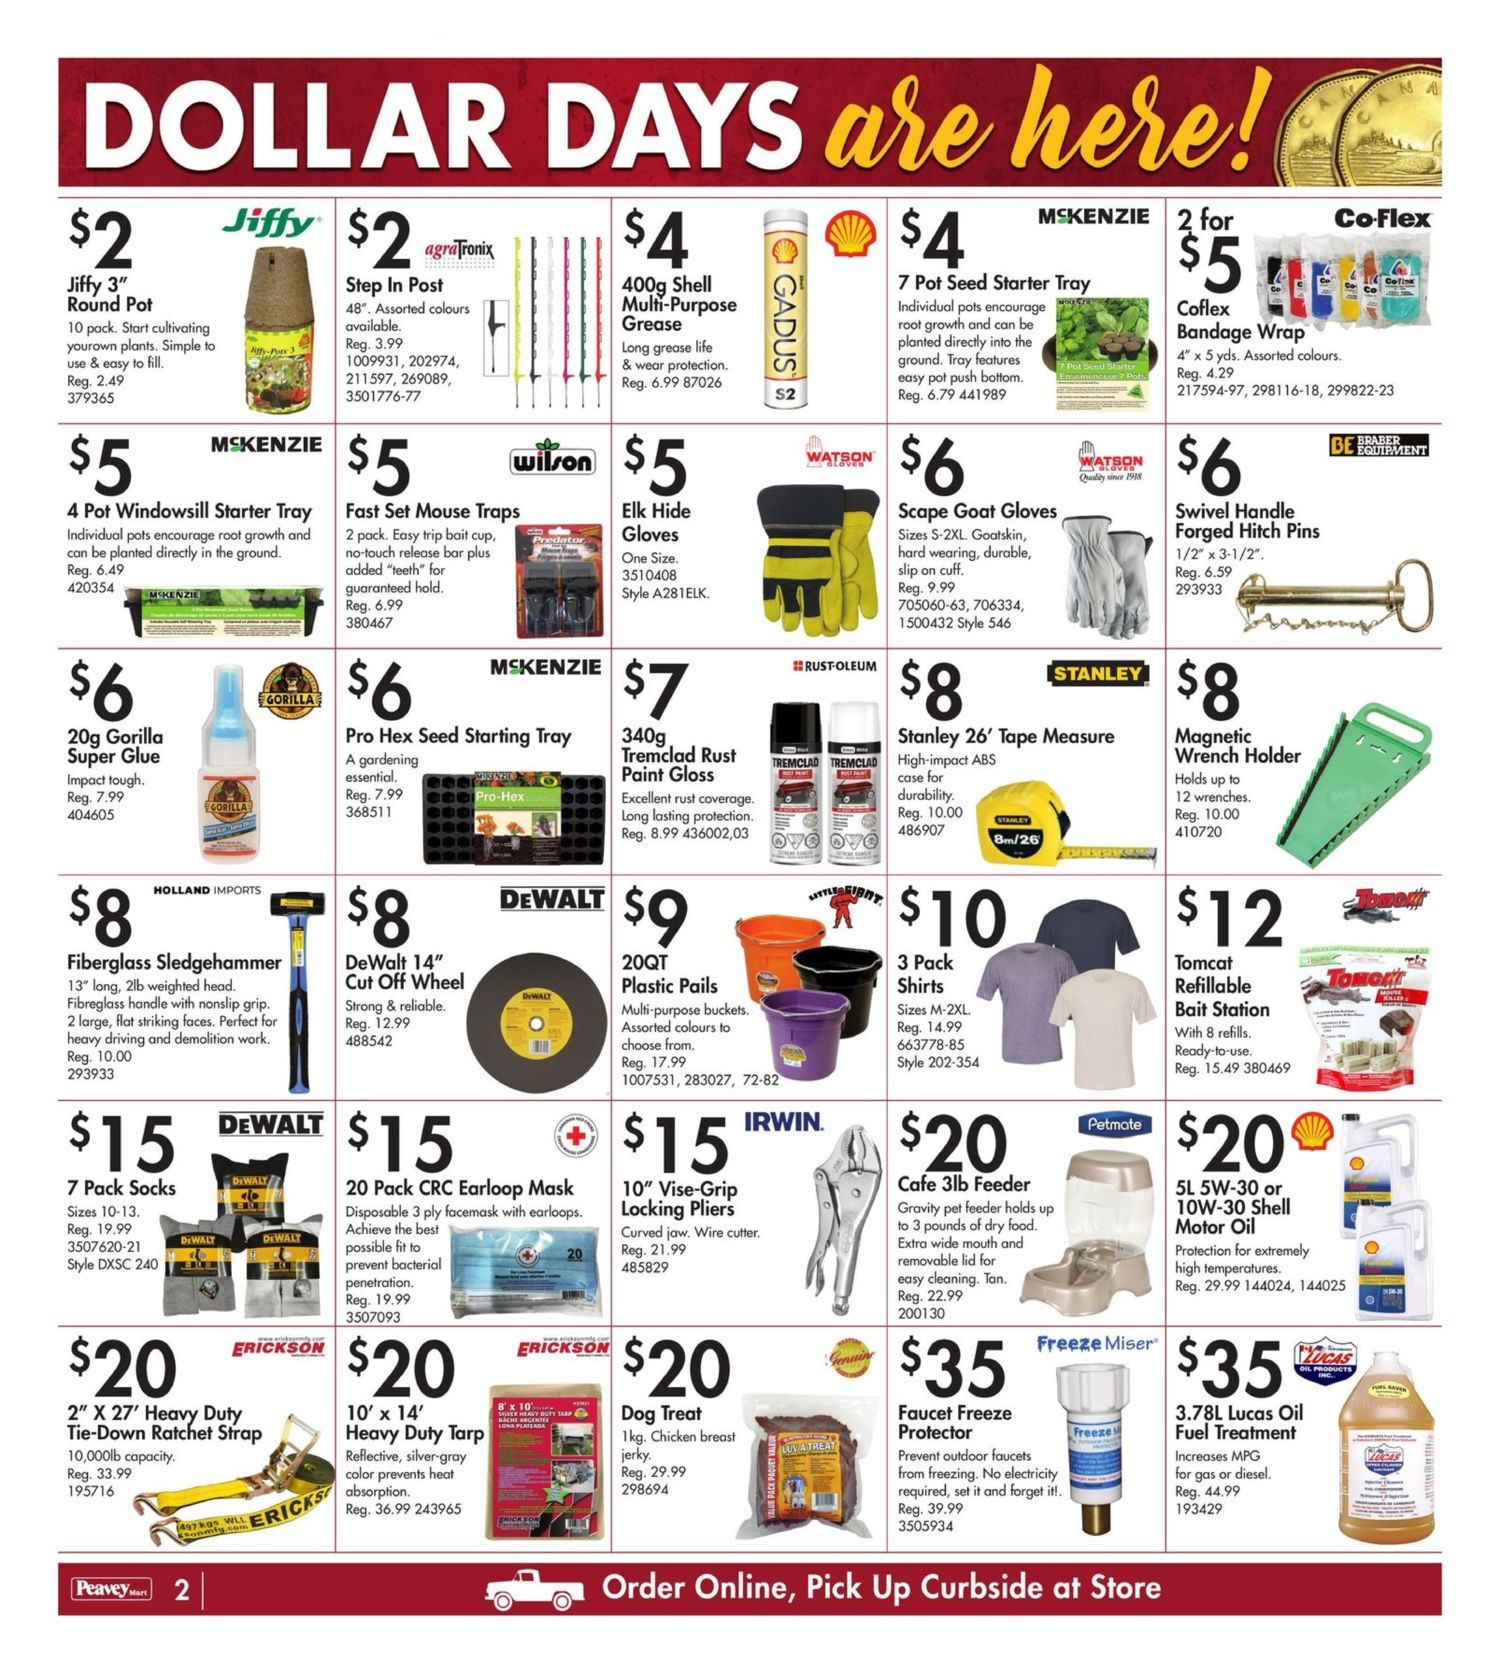 TSC Stores - Weekly Deals - Dollar Days Are Here - Page 3